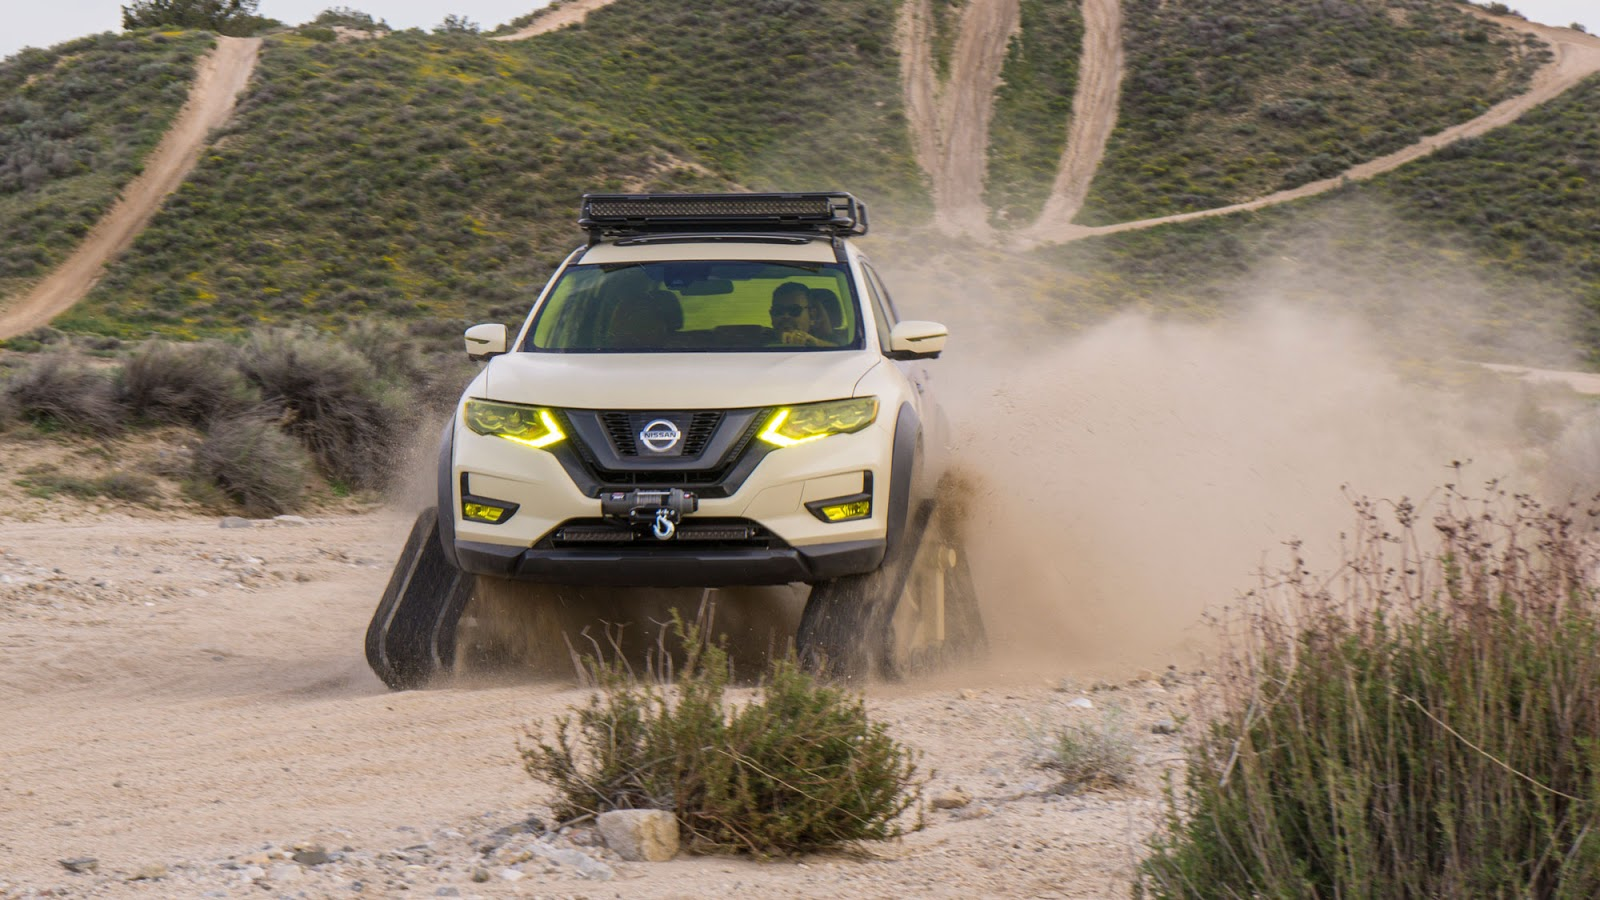 Nissan Rogue Trail Warrior Project 14 rs Nissan Rogue Trail Warrior Project : Το X-trail του... Ράμπο